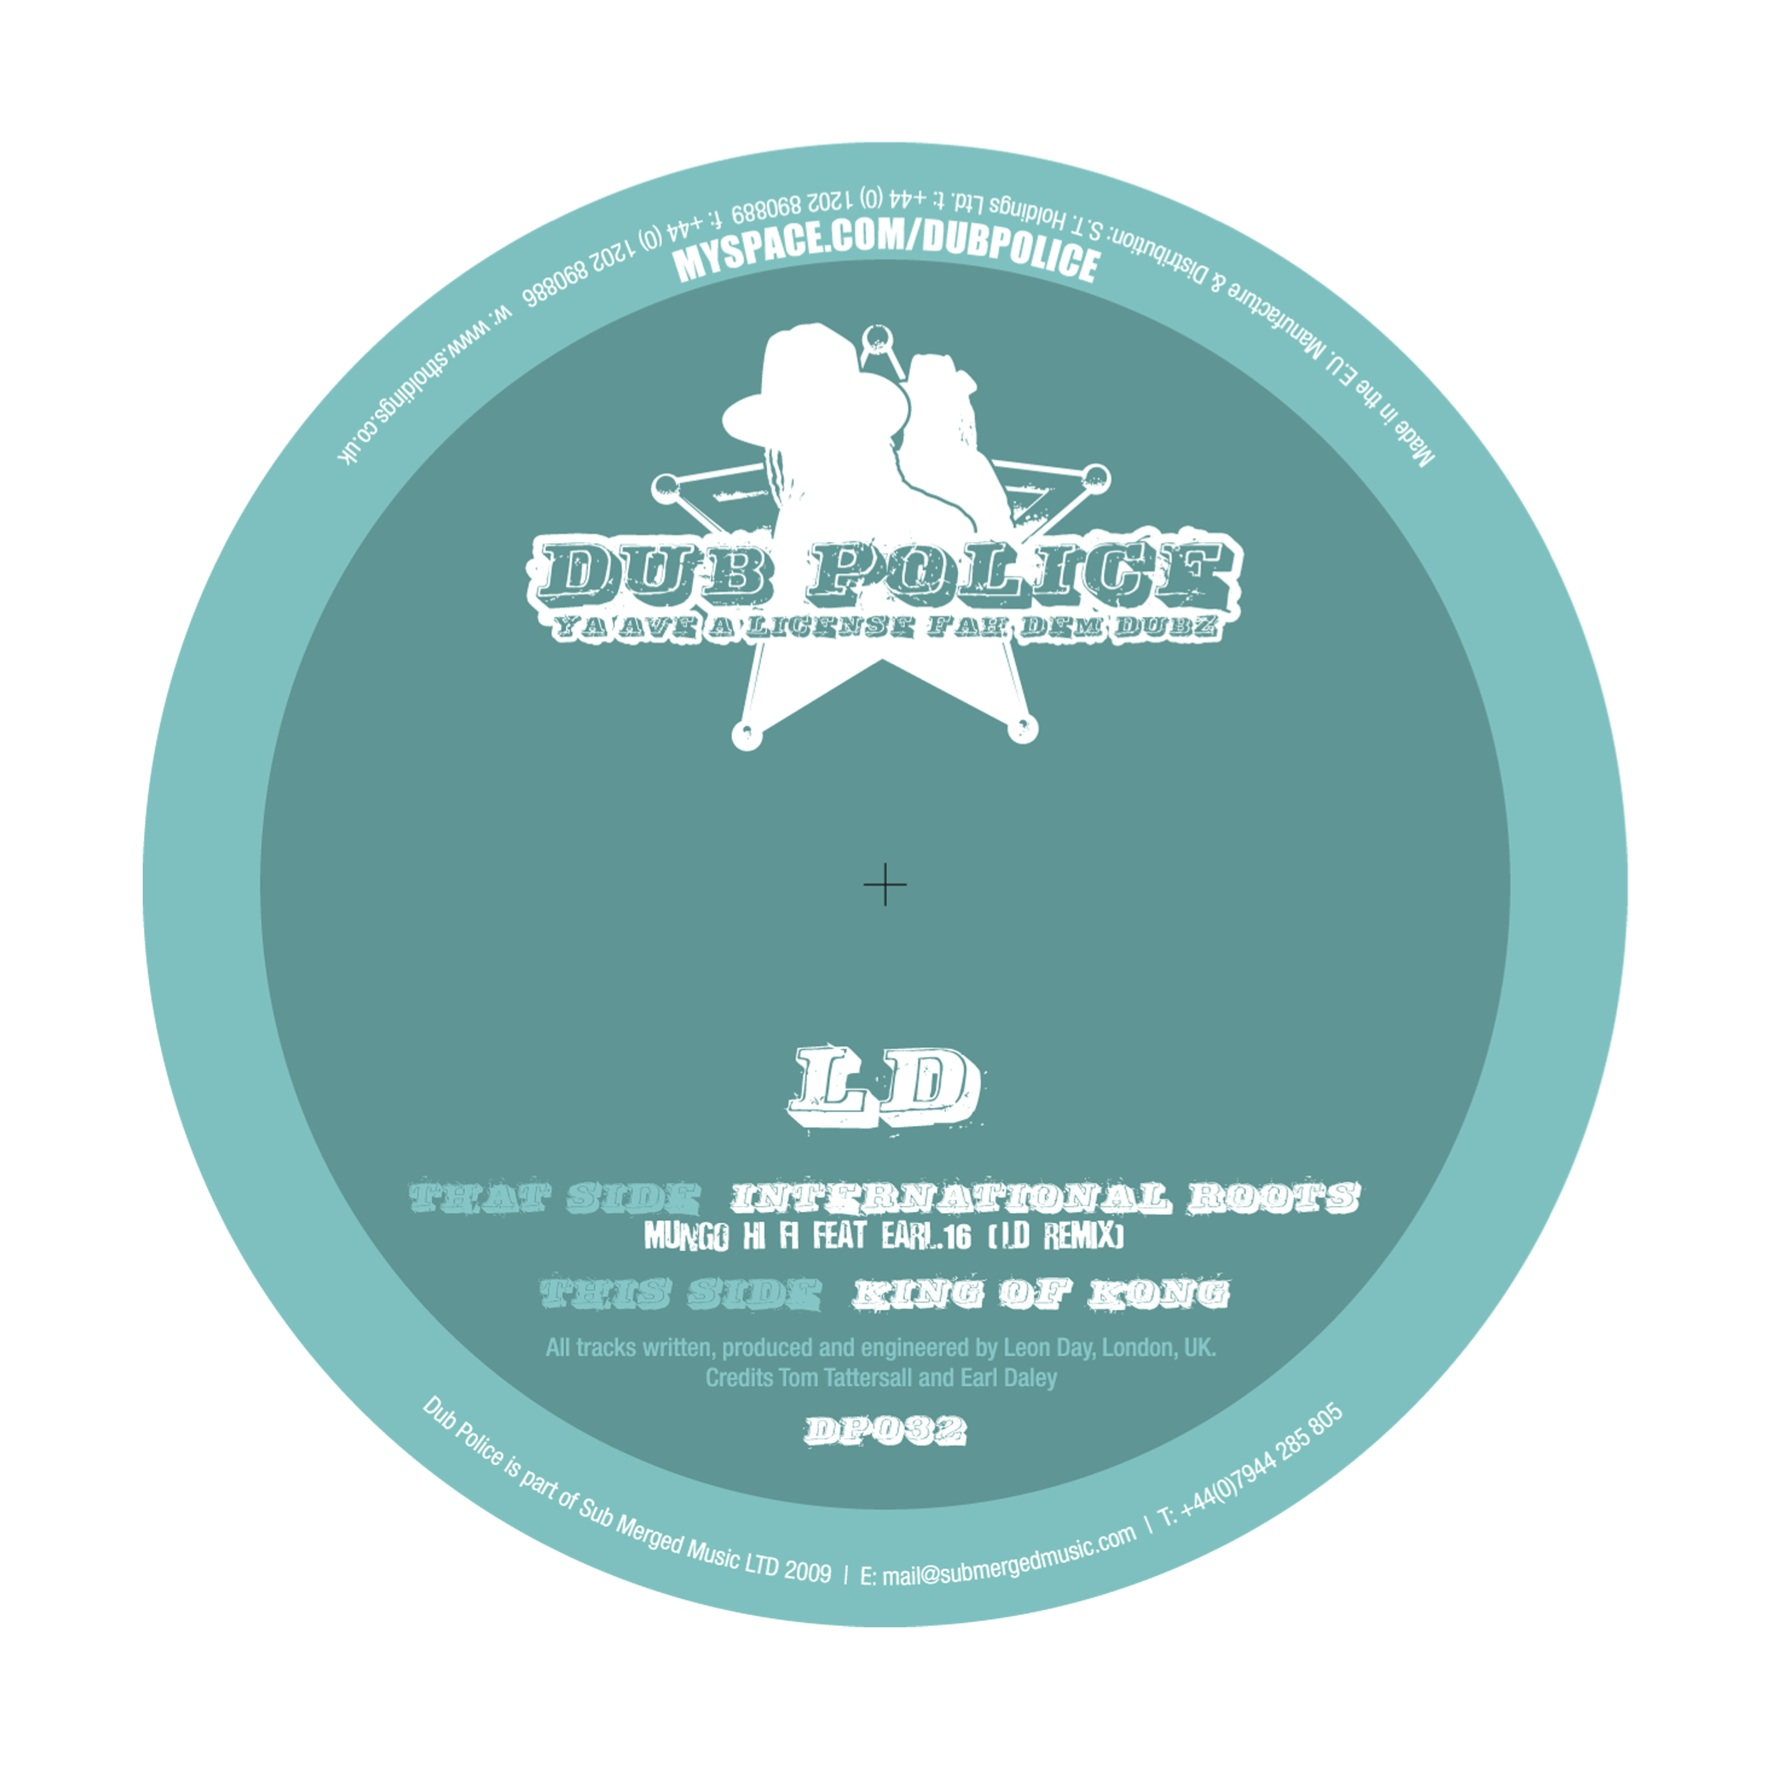 DP032: INTERNATIONAL ROOTS (LD REMIX) / THE KING OF KONG